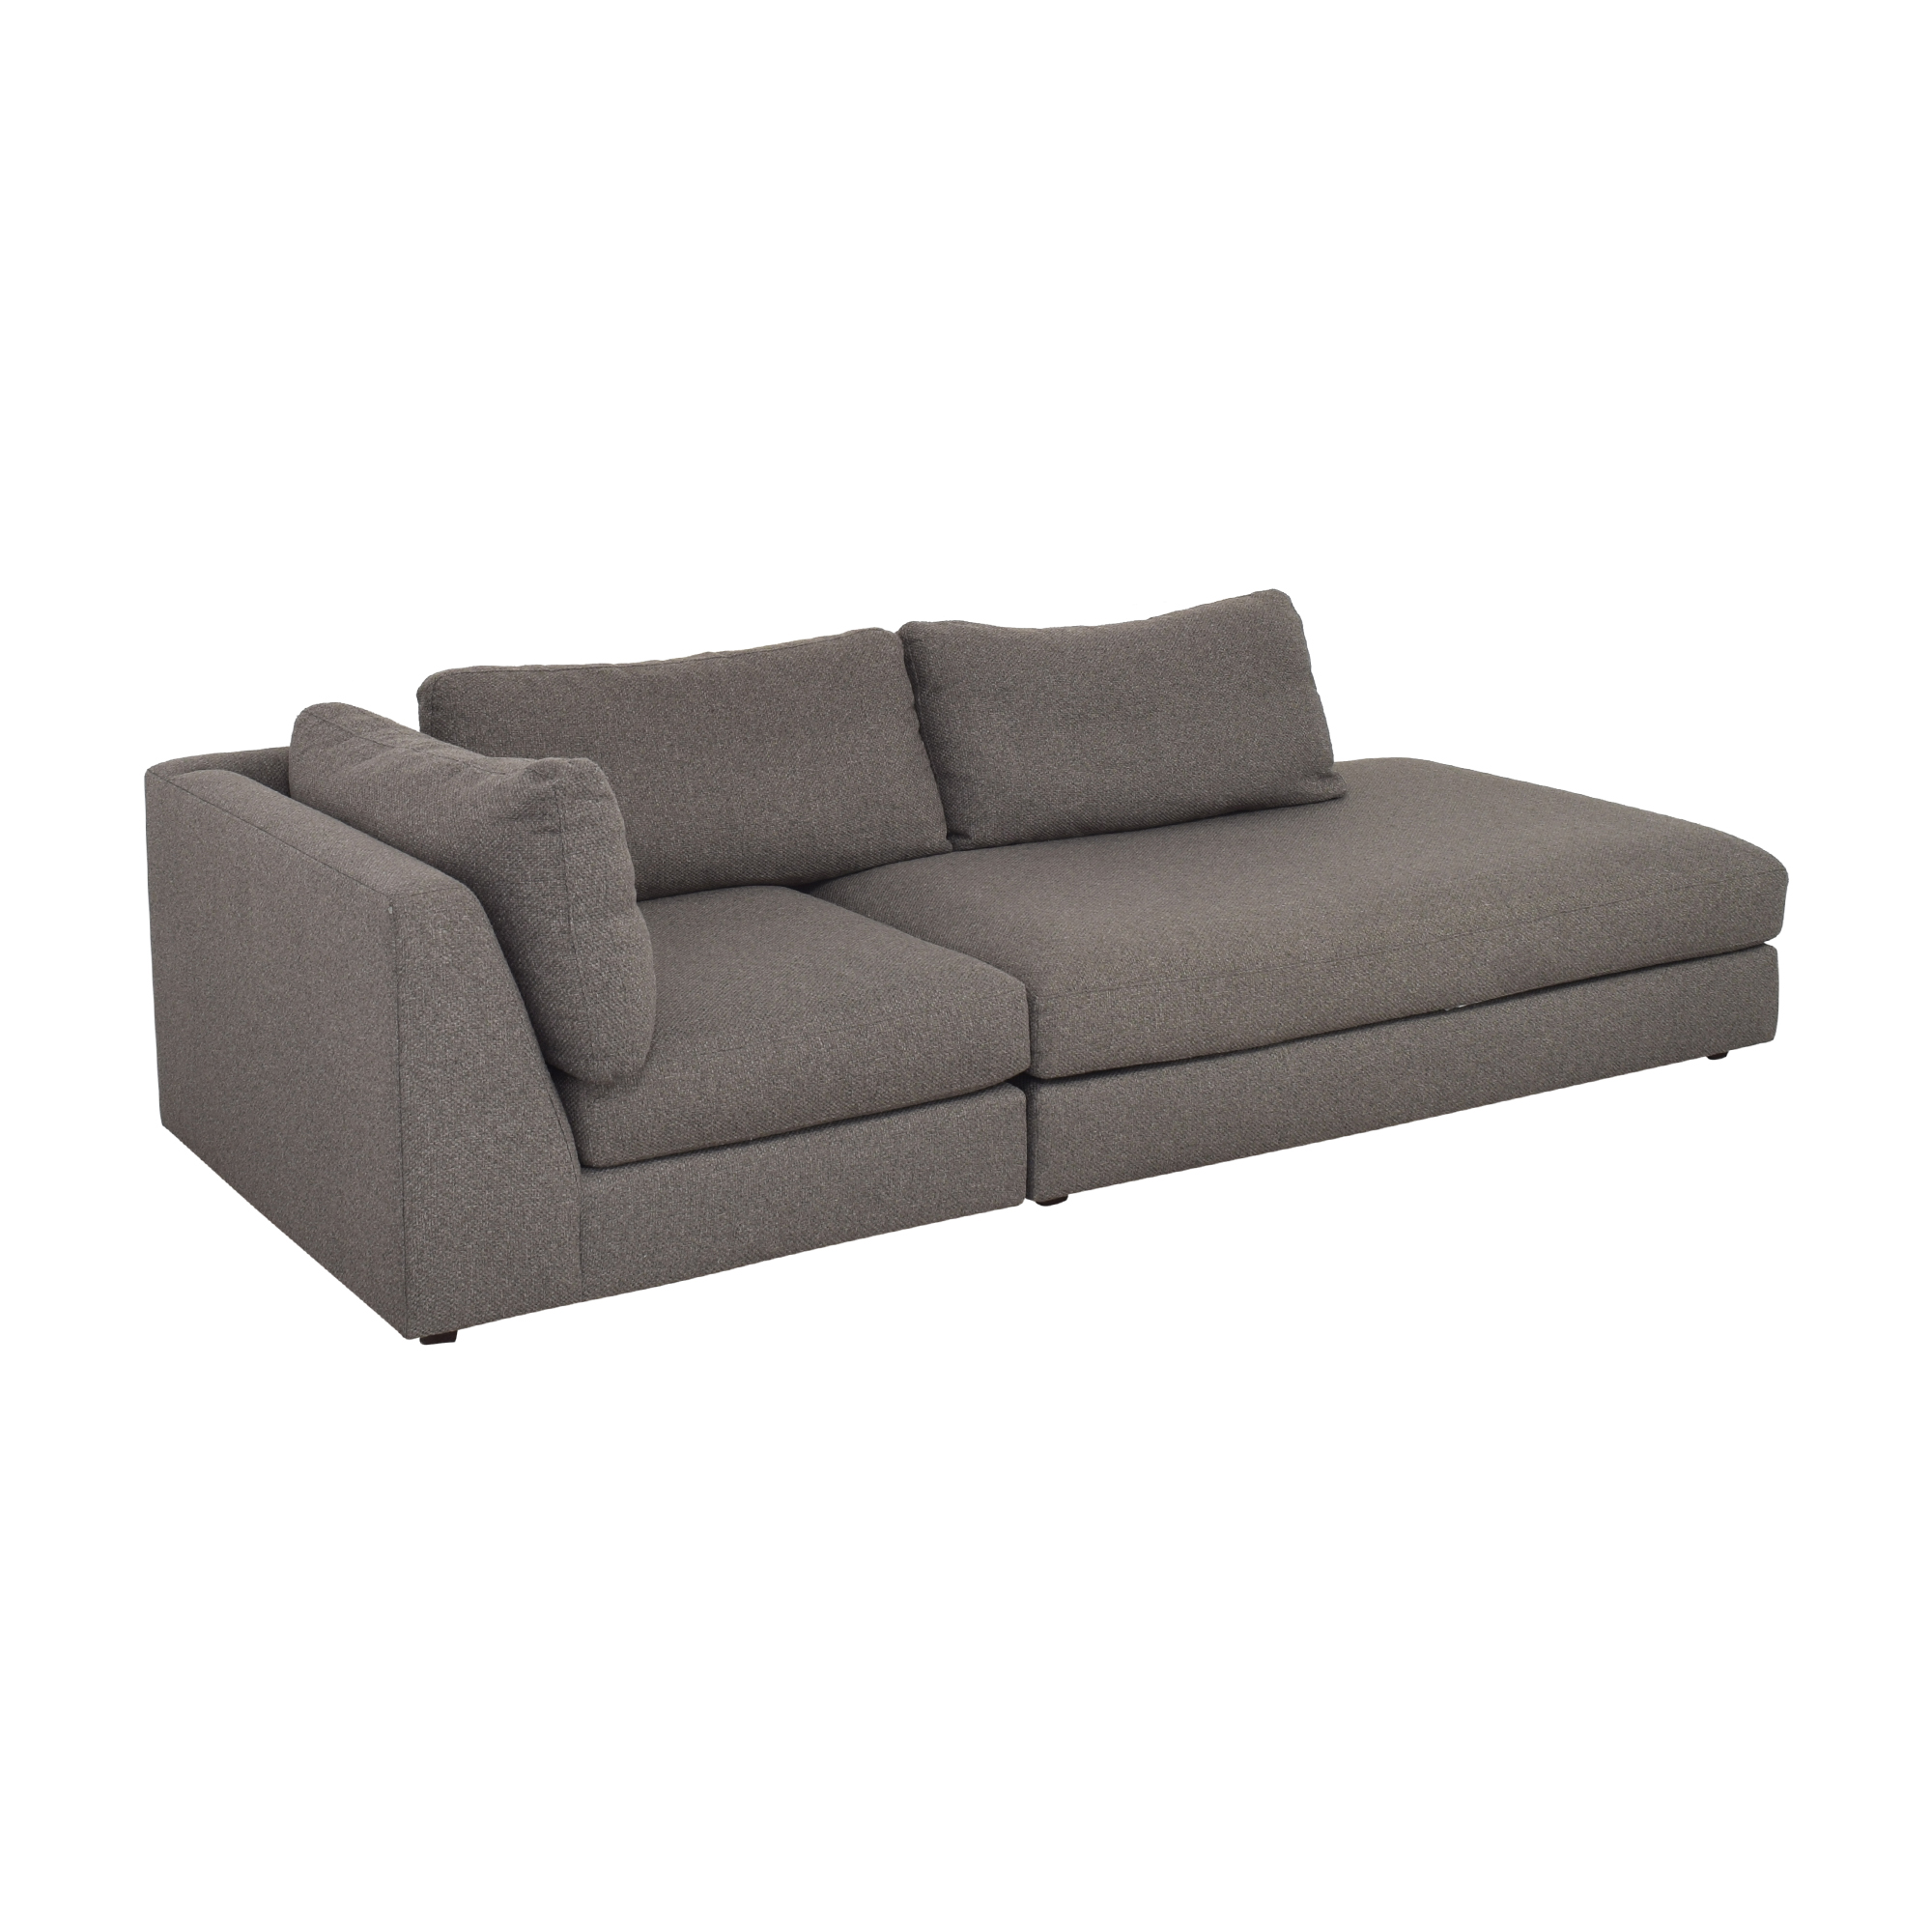 Crate & Barrel Crate & Barrel Two Piece Sectional Sofa nyc